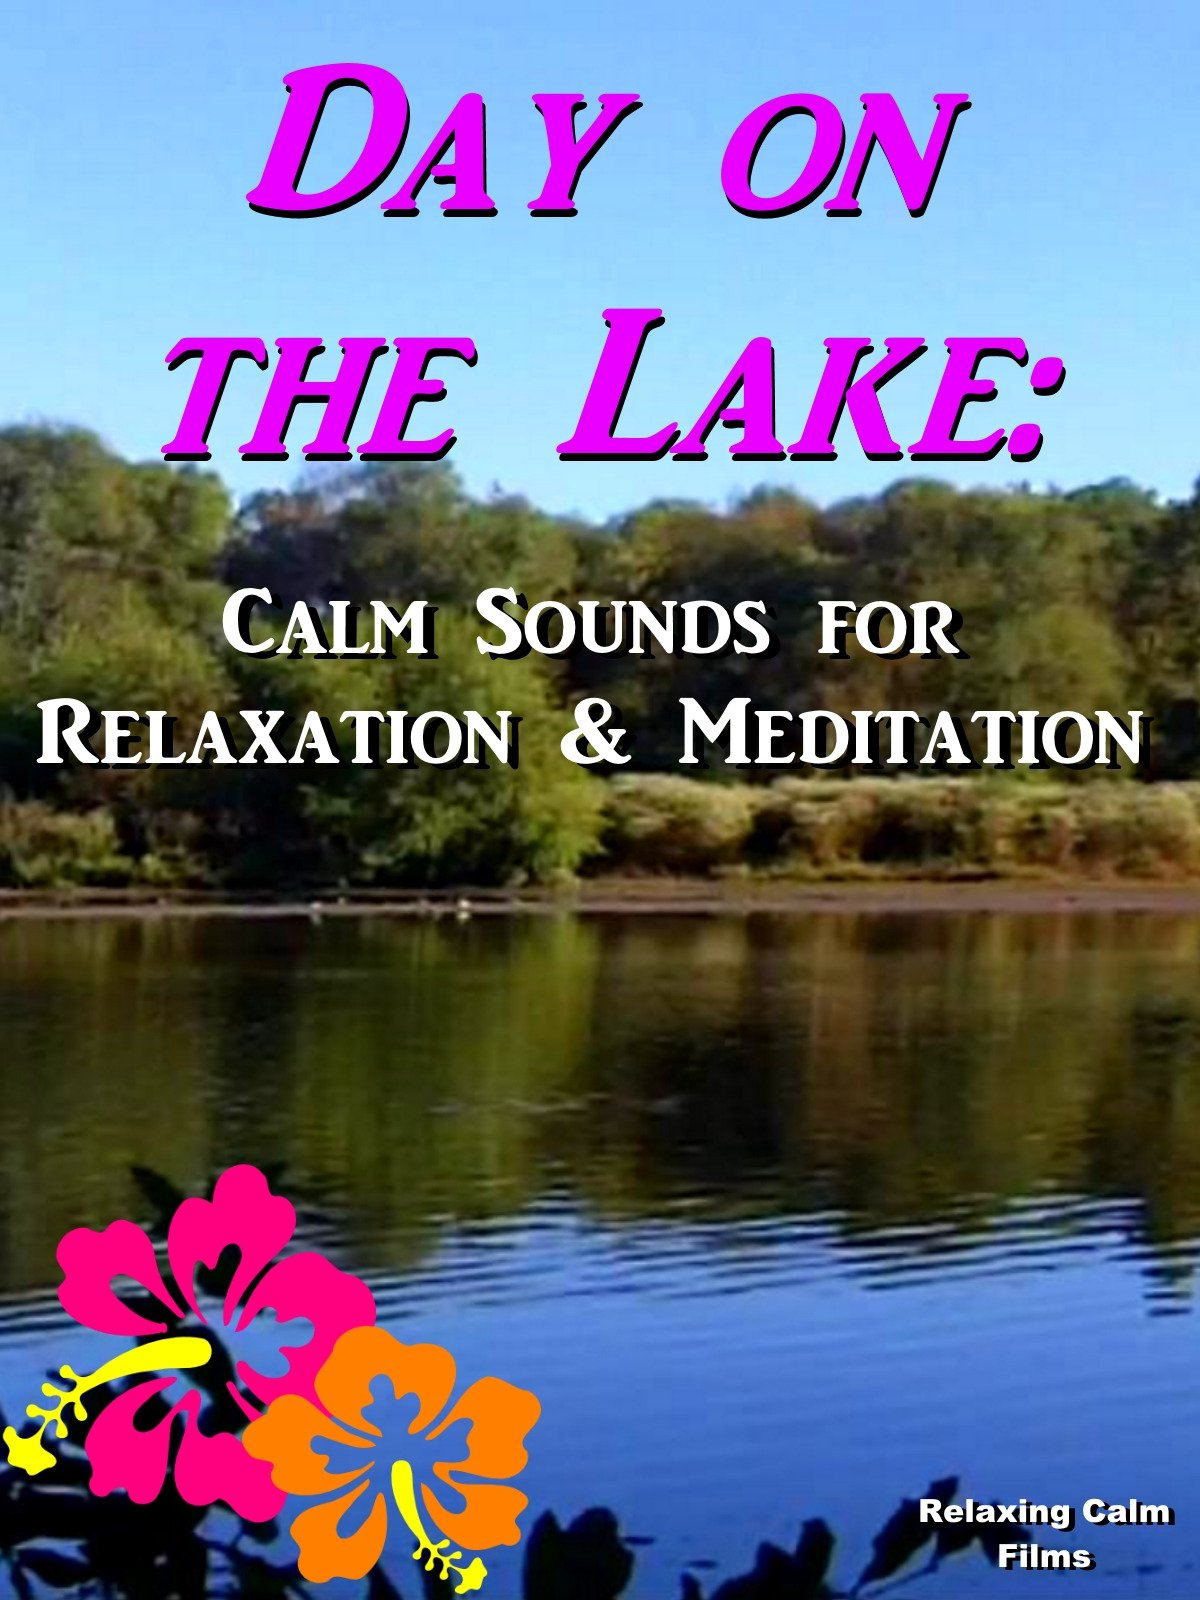 Day on the Lake: Calm Sounds for Relaxation & Meditation